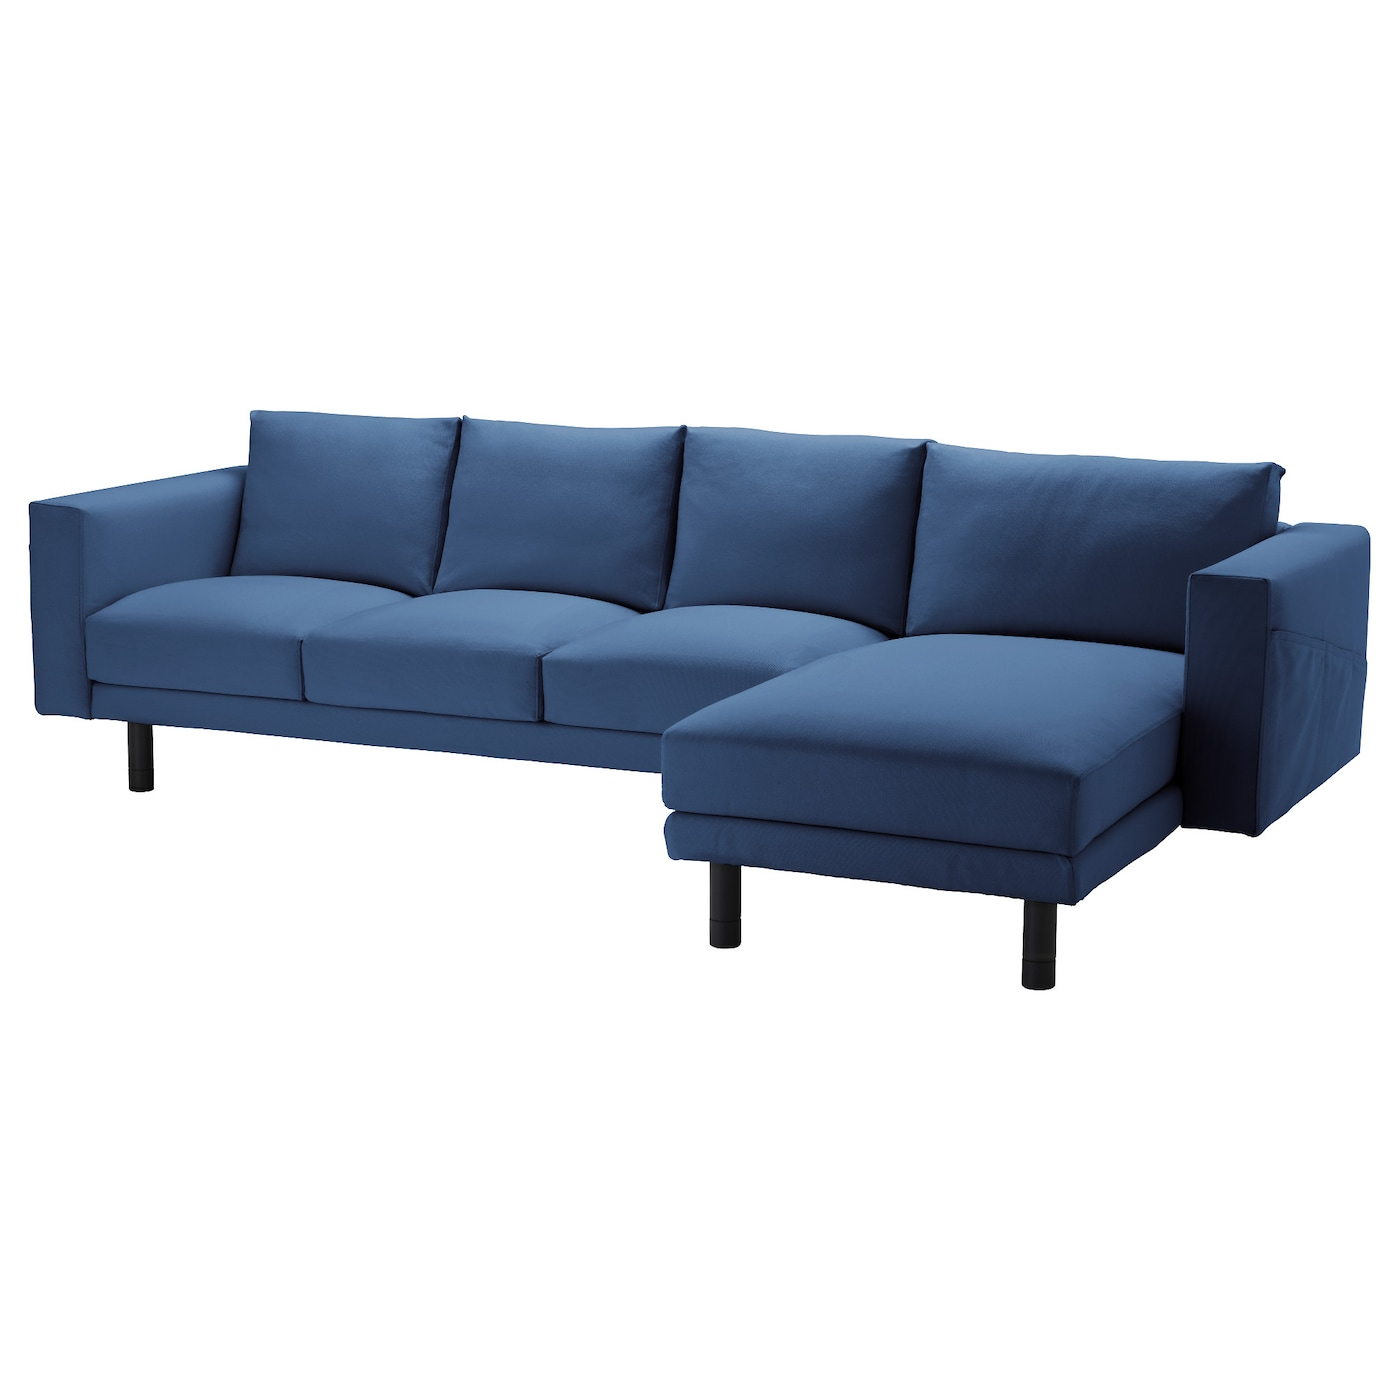 Norsborg three seat sofa and chaise longue gr sbo dark - Chaise longue exterieur ikea ...